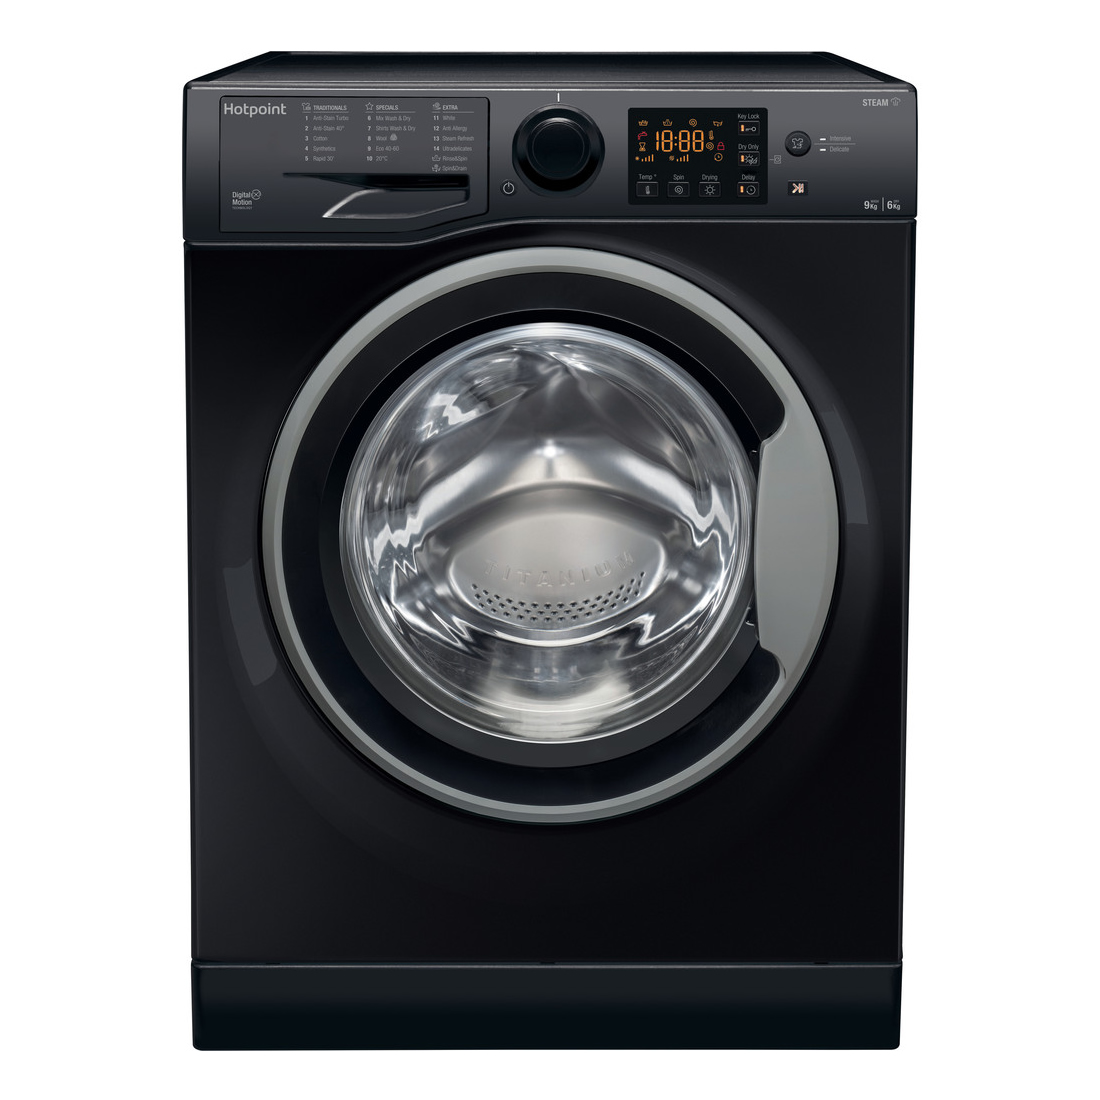 Image of Hotpoint RDG9643KS